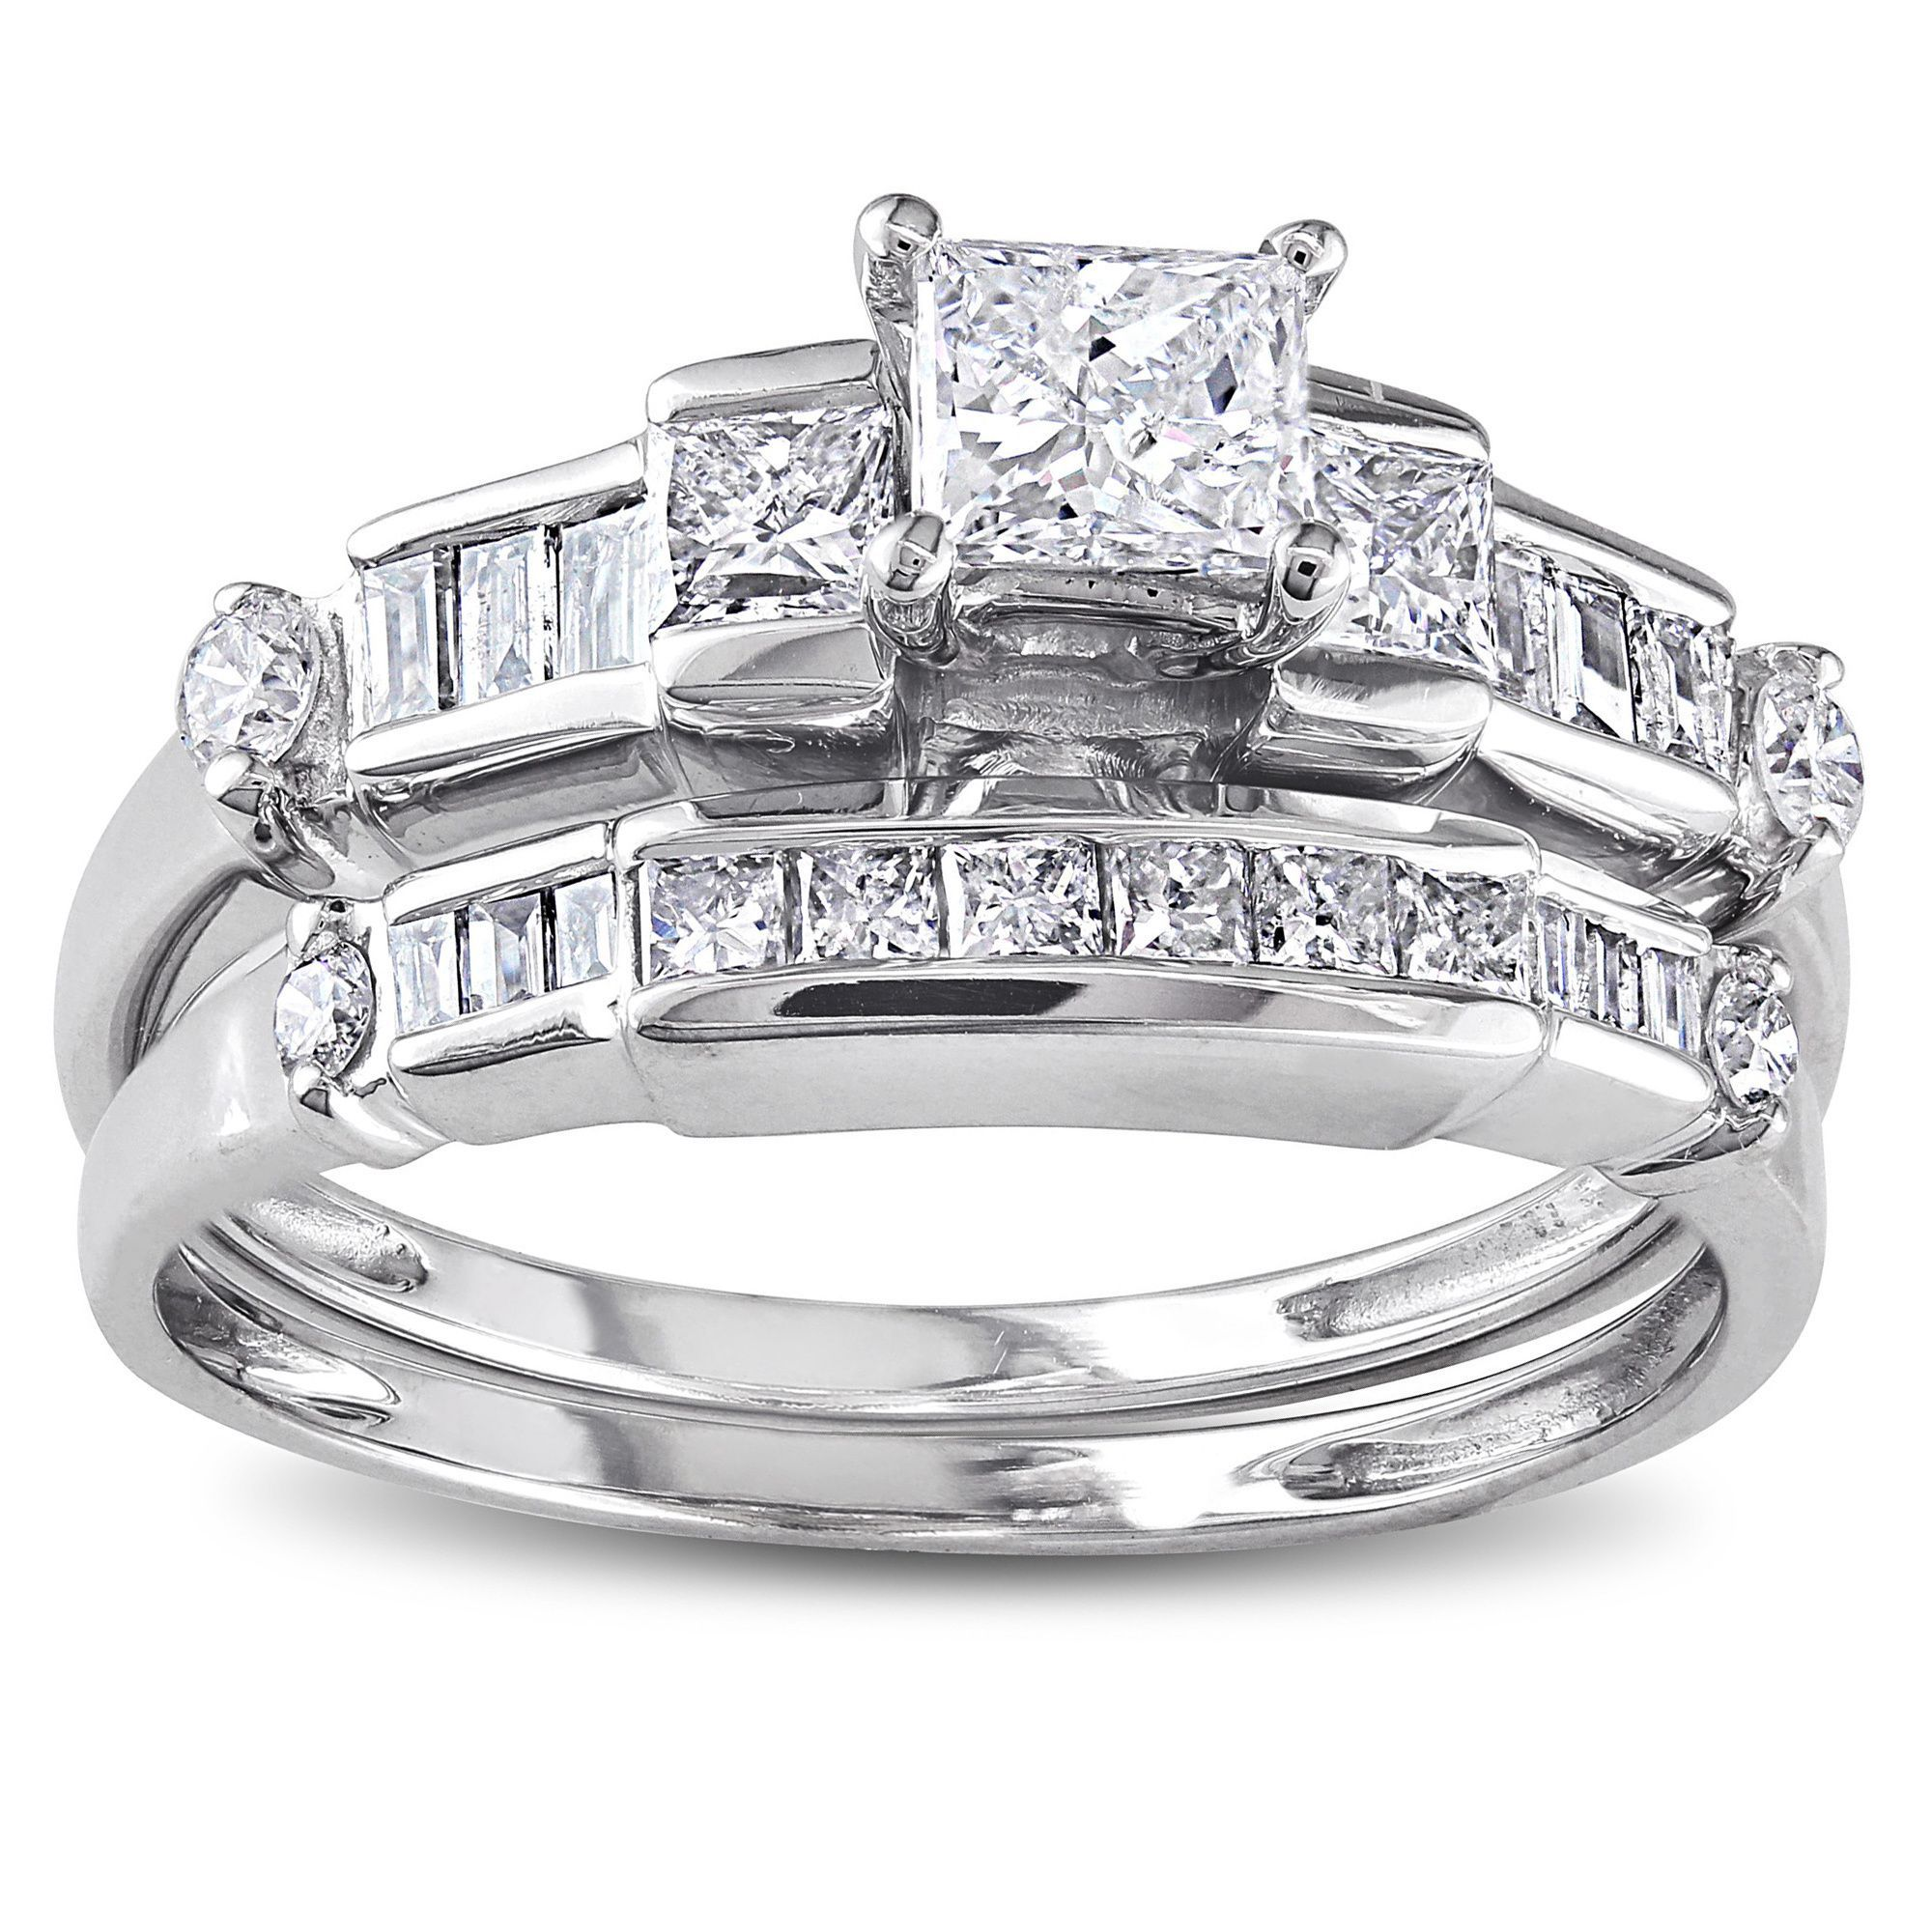 calder by engagement sets and set charmed of lovely wedding richard ring diamond jewellery